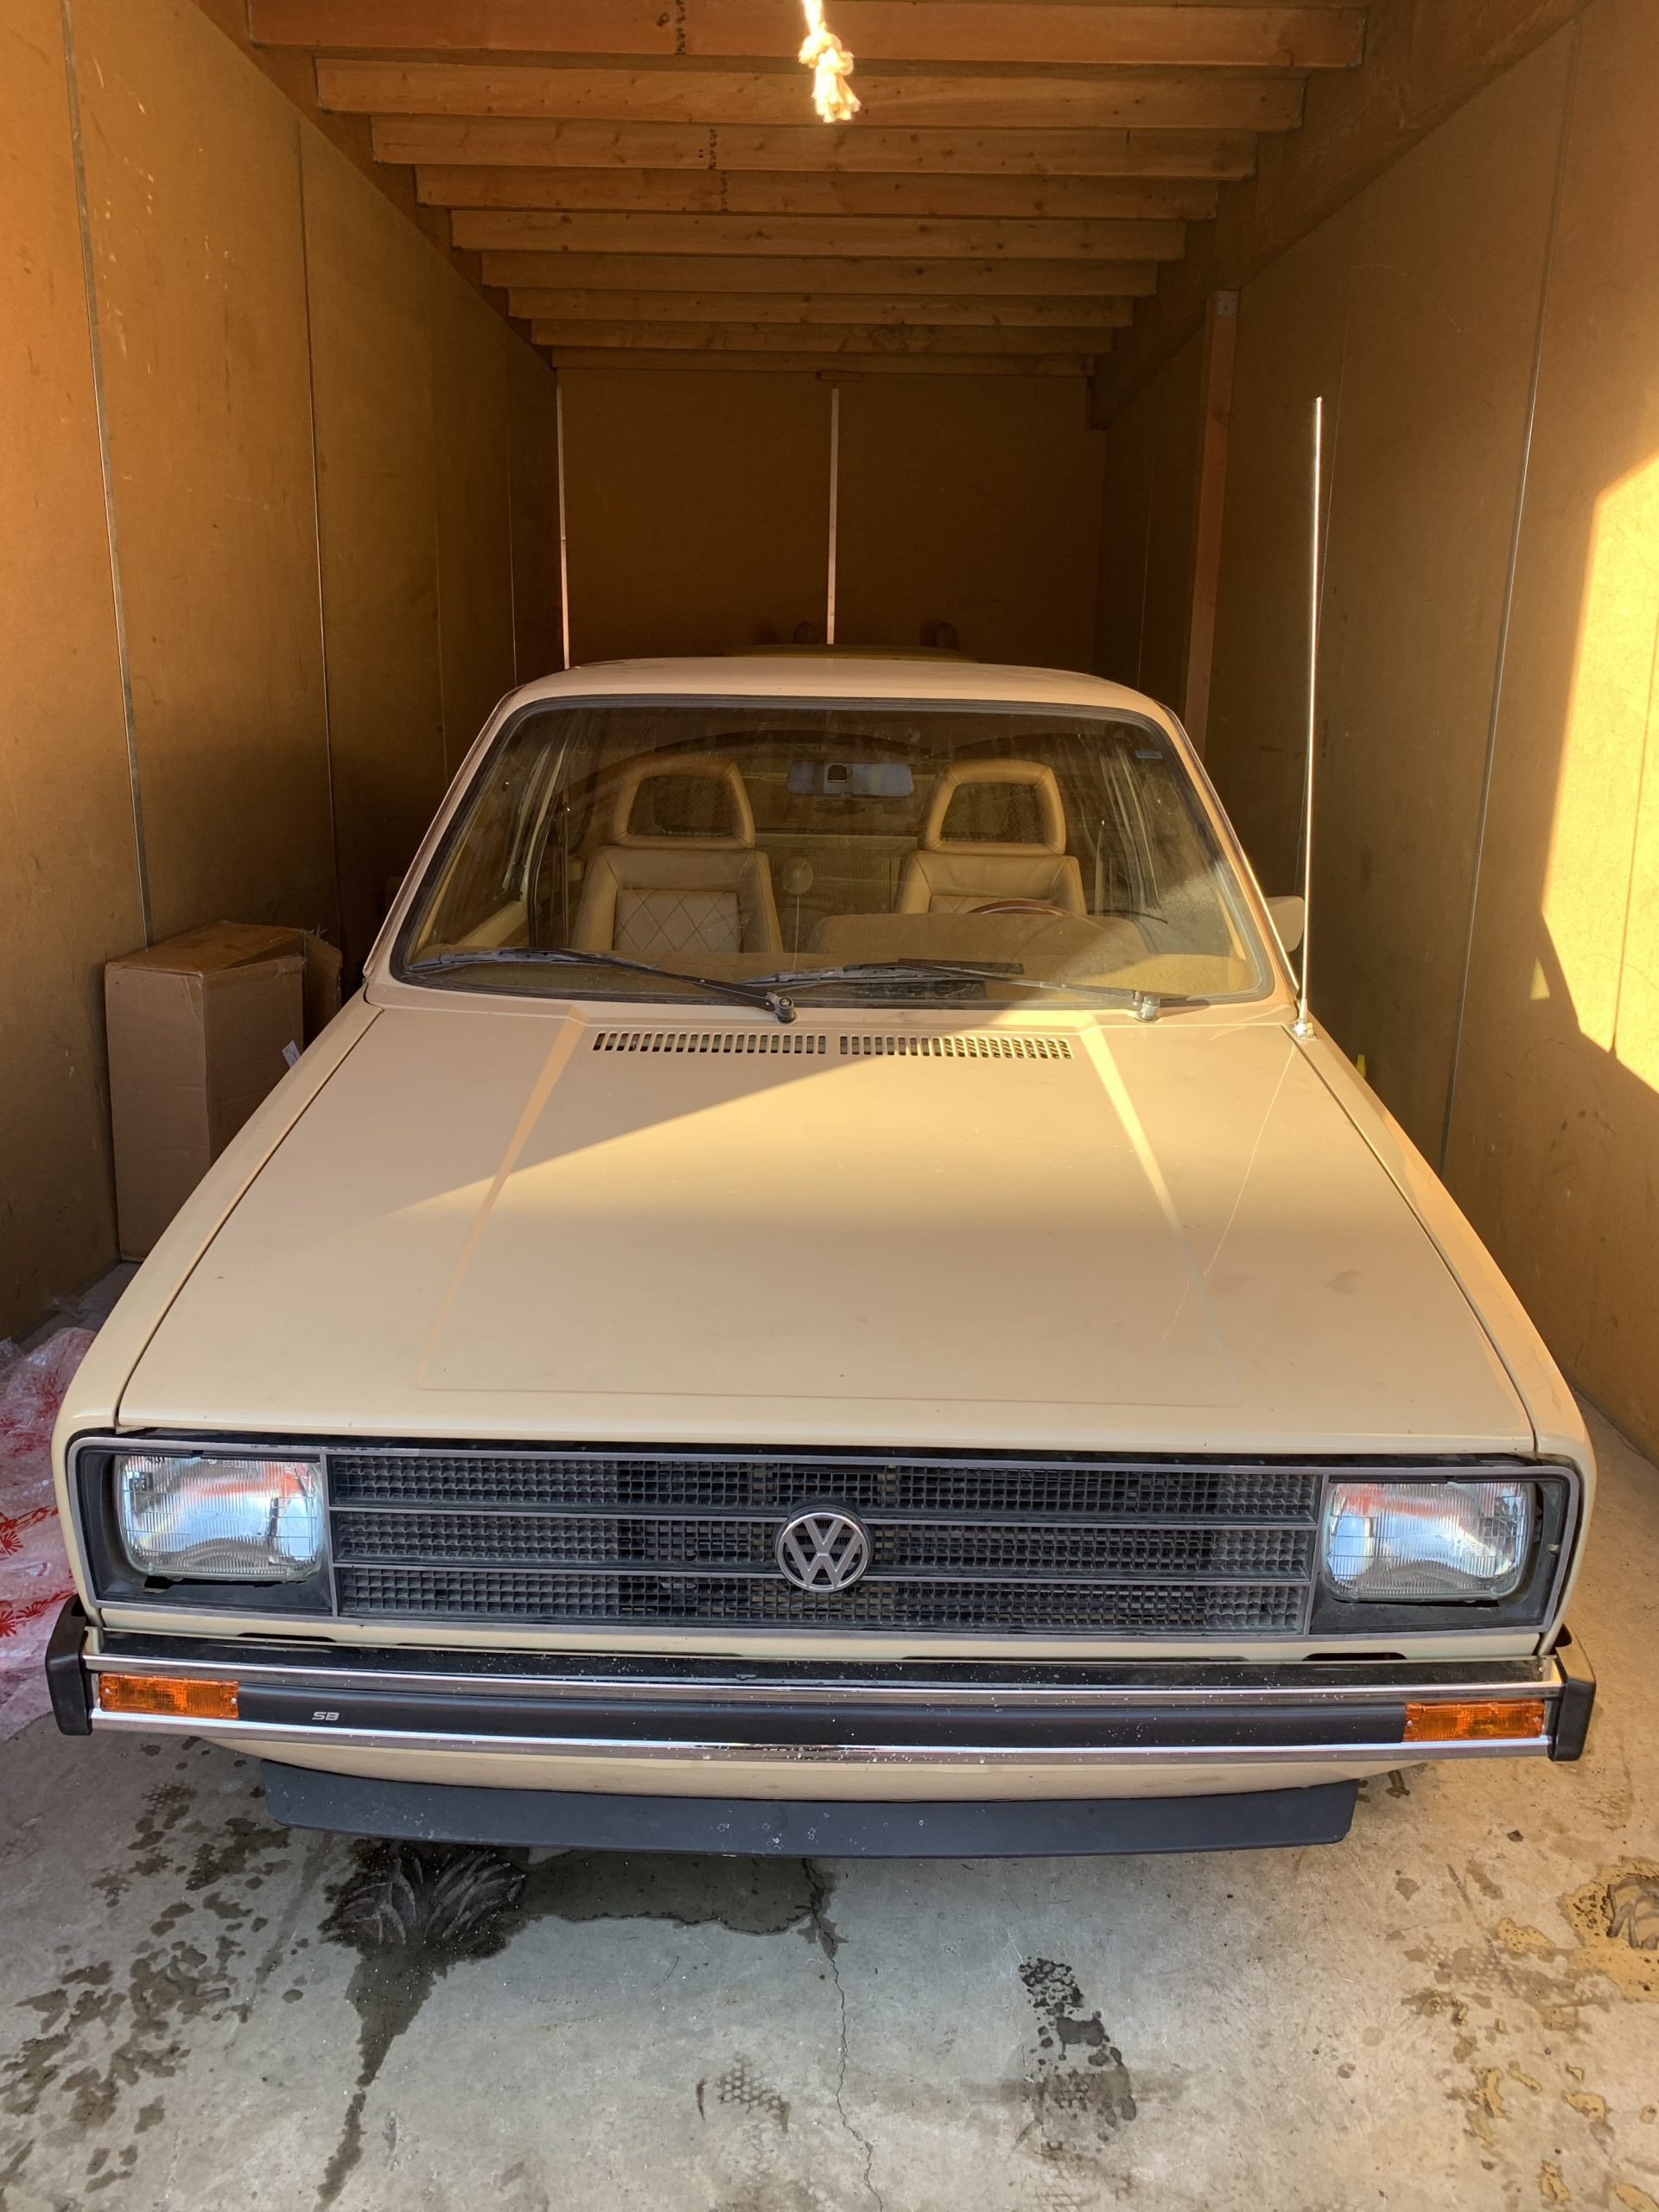 1980 VW Rabbit TDI swap front Dec 13, 3 25 32 PM